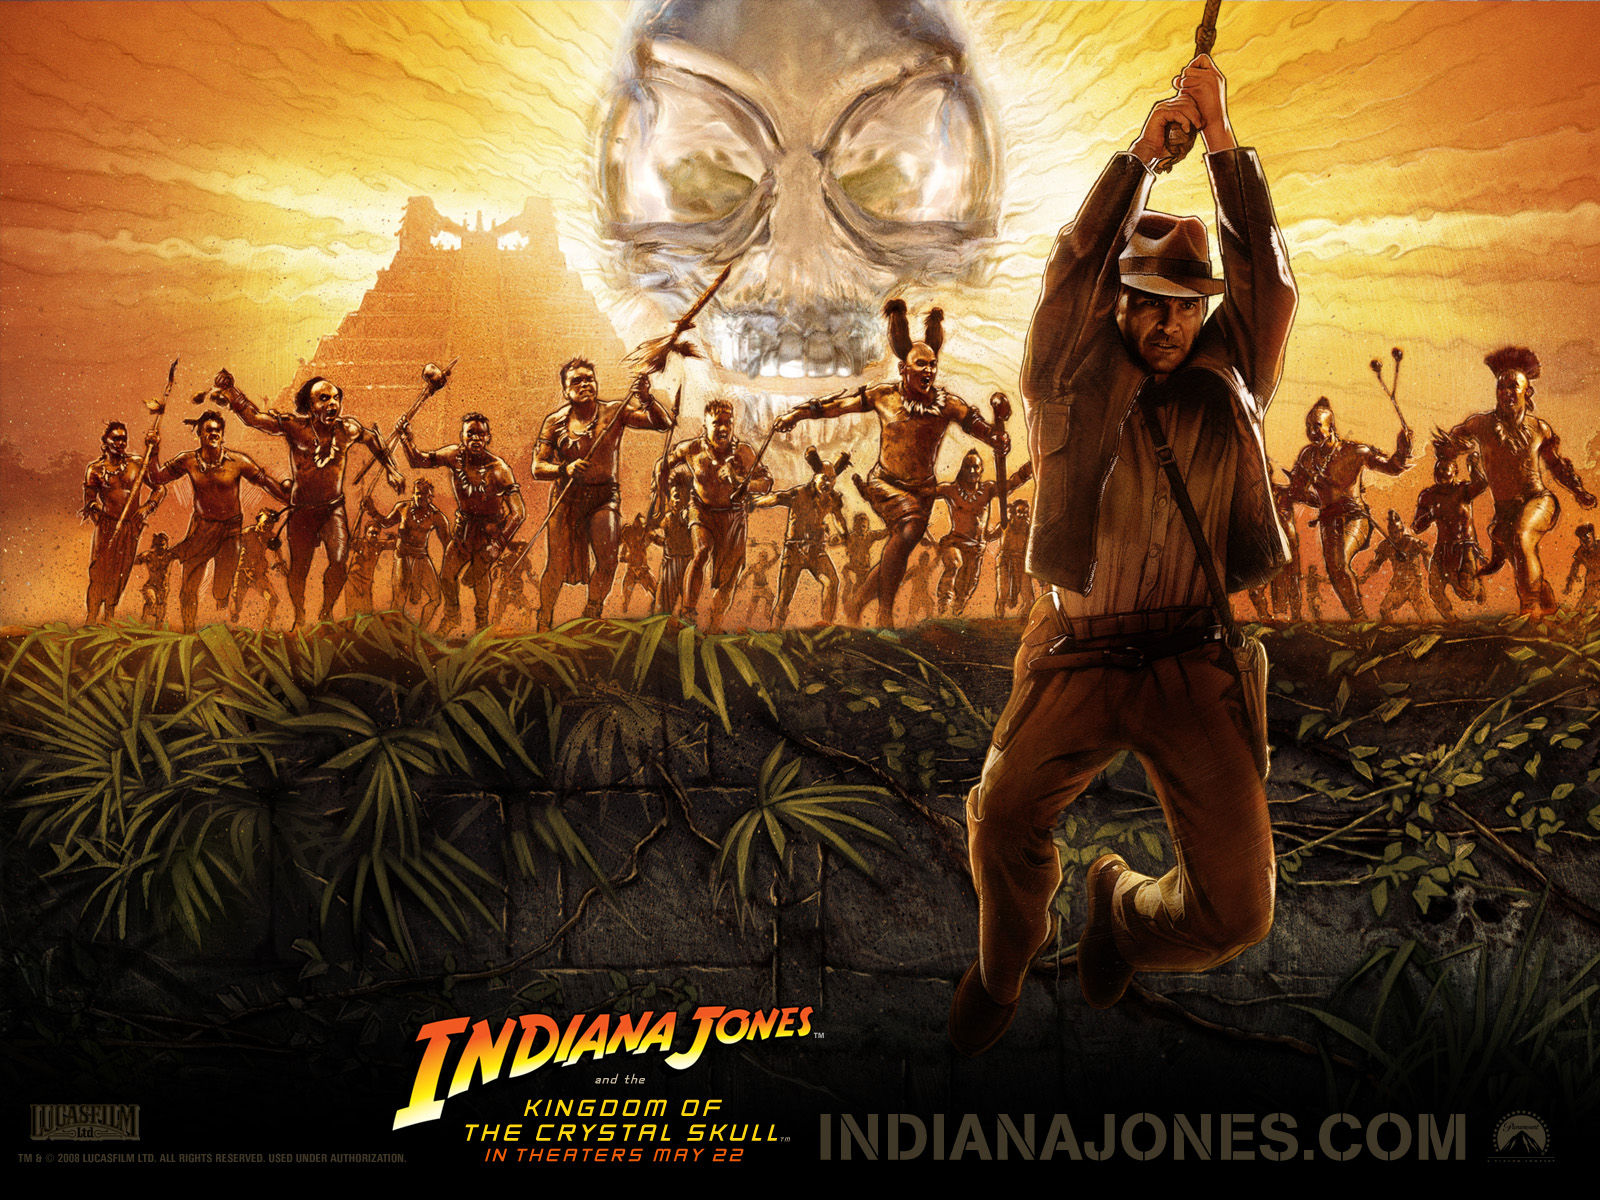 http://2.bp.blogspot.com/_IeoCDtDWgMk/TGKtT98e9_I/AAAAAAAAAao/PUhb-0fHqkM/s1600/indiana_jones_and_the_kingdom_of_the_crystal_skull36.jpg